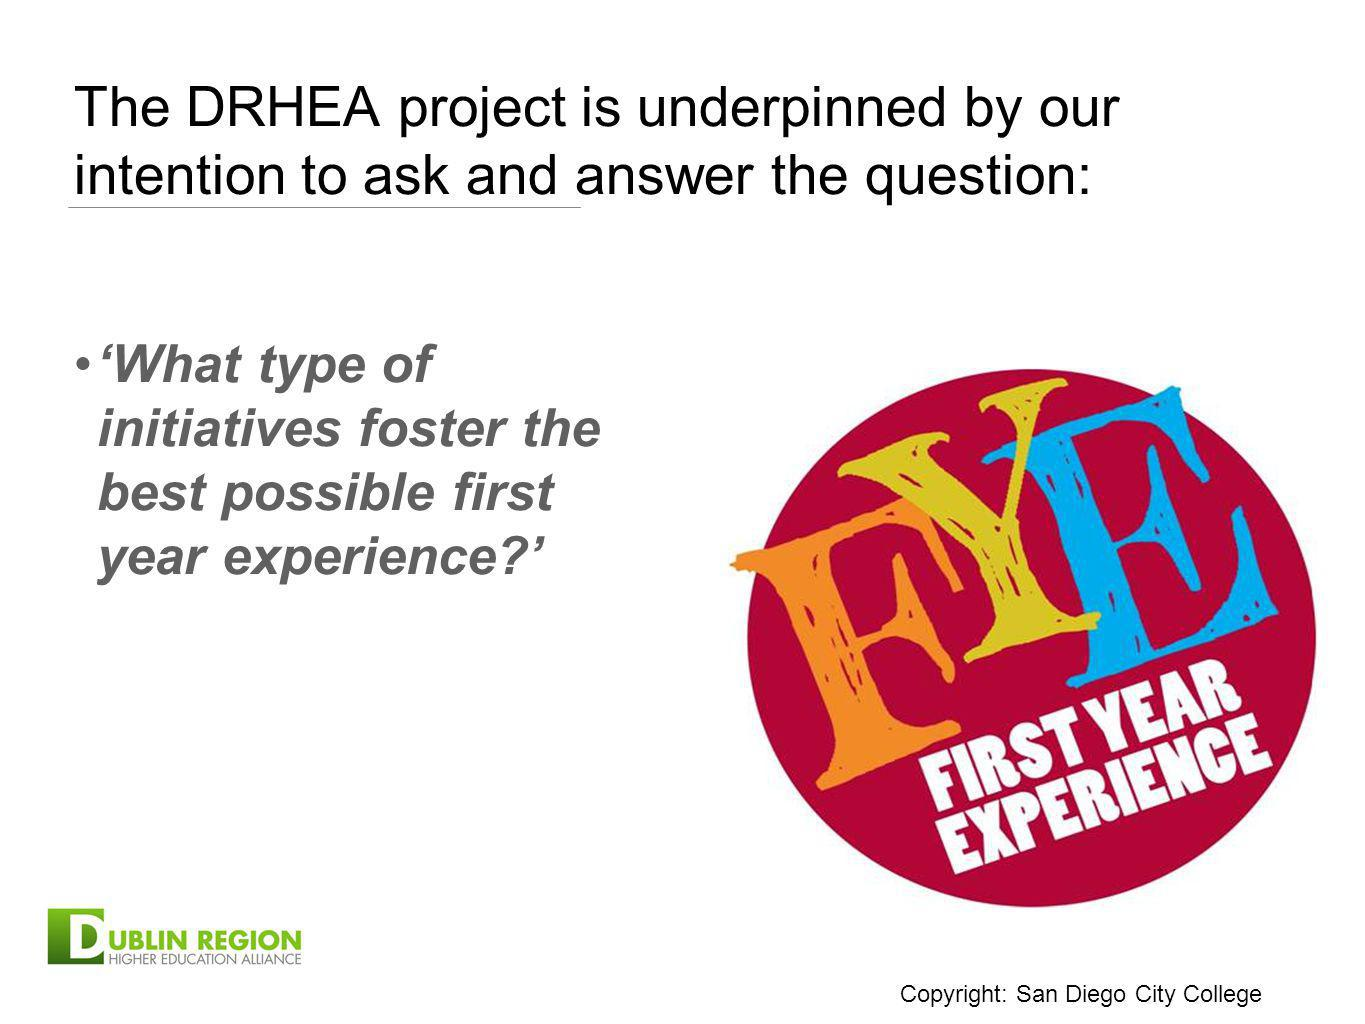 The DRHEA project is underpinned by our intention to ask and answer the question: What type of initiatives foster the best possible first year experie